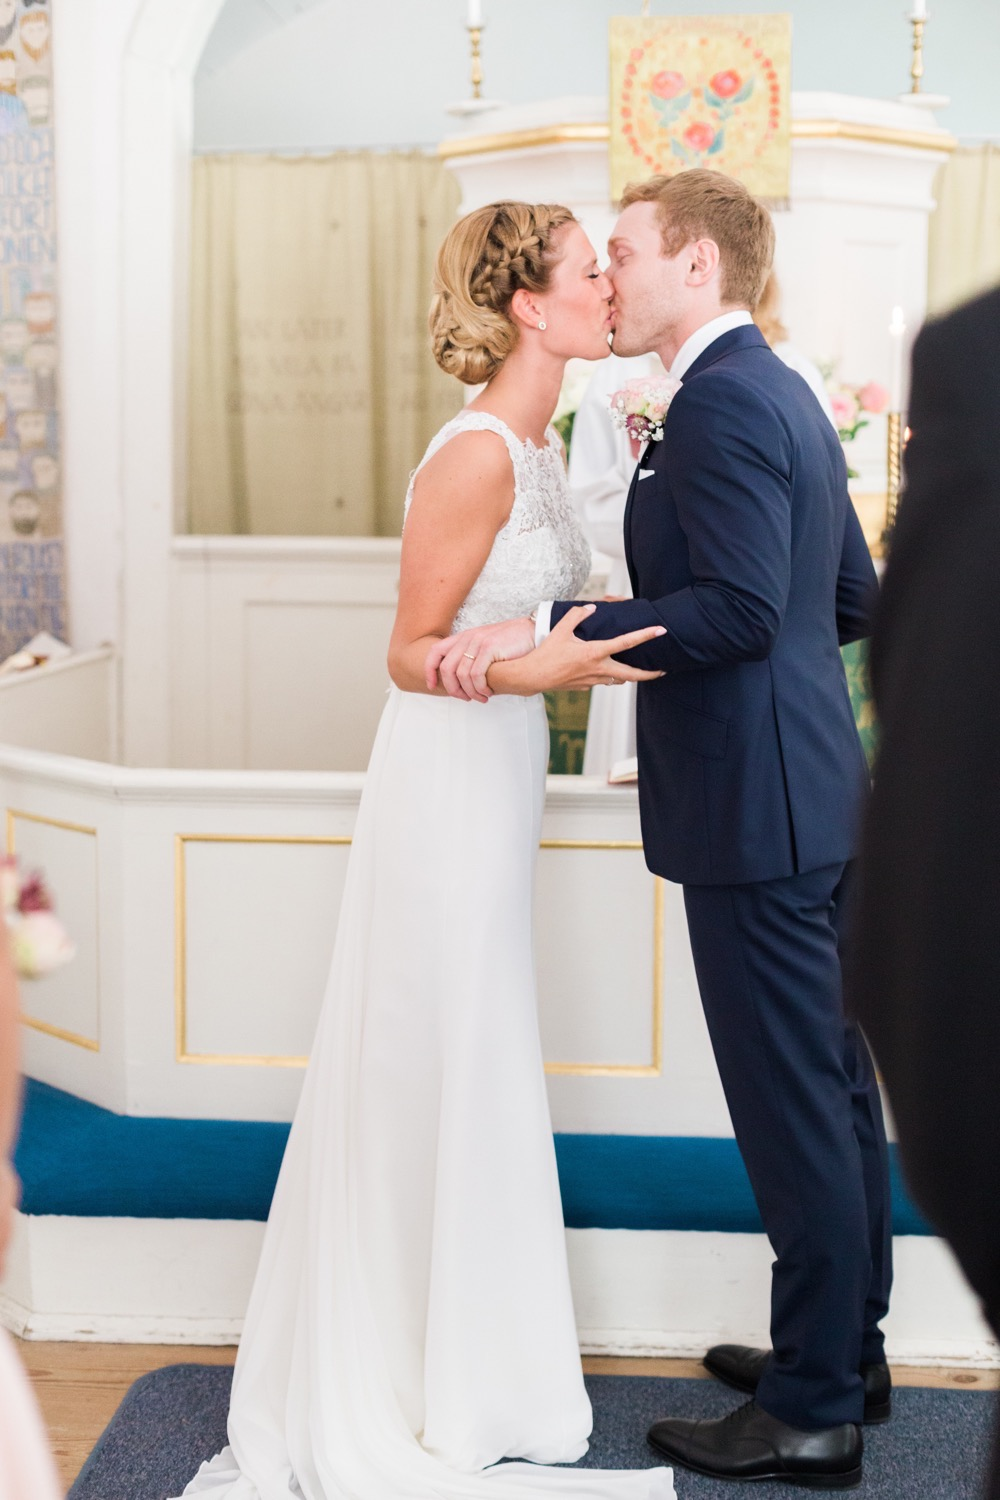 elegant swedish wedding by emelie petre63